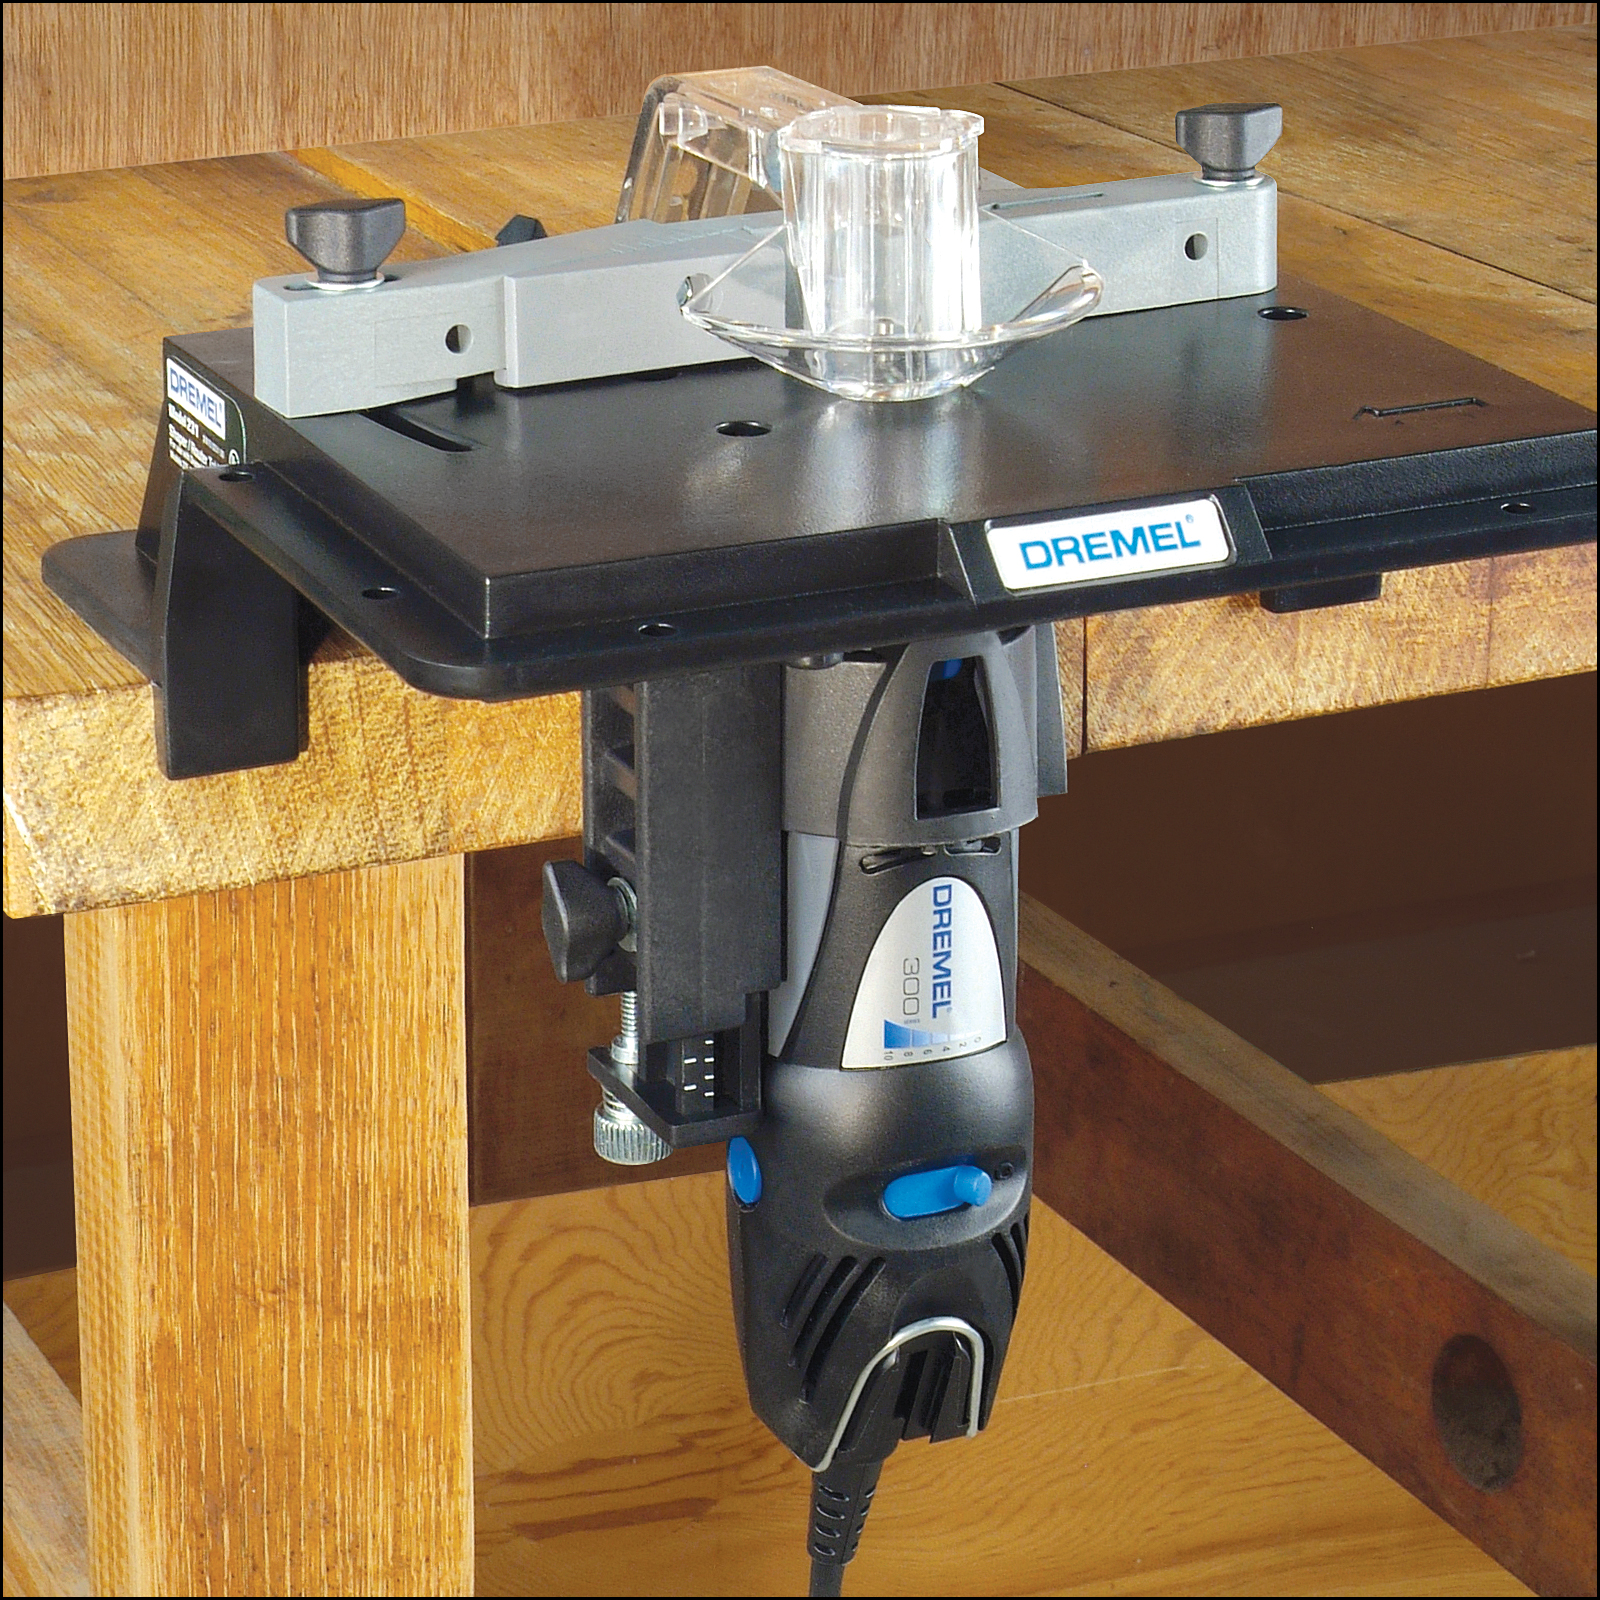 Dremel Shaper Table Attachment